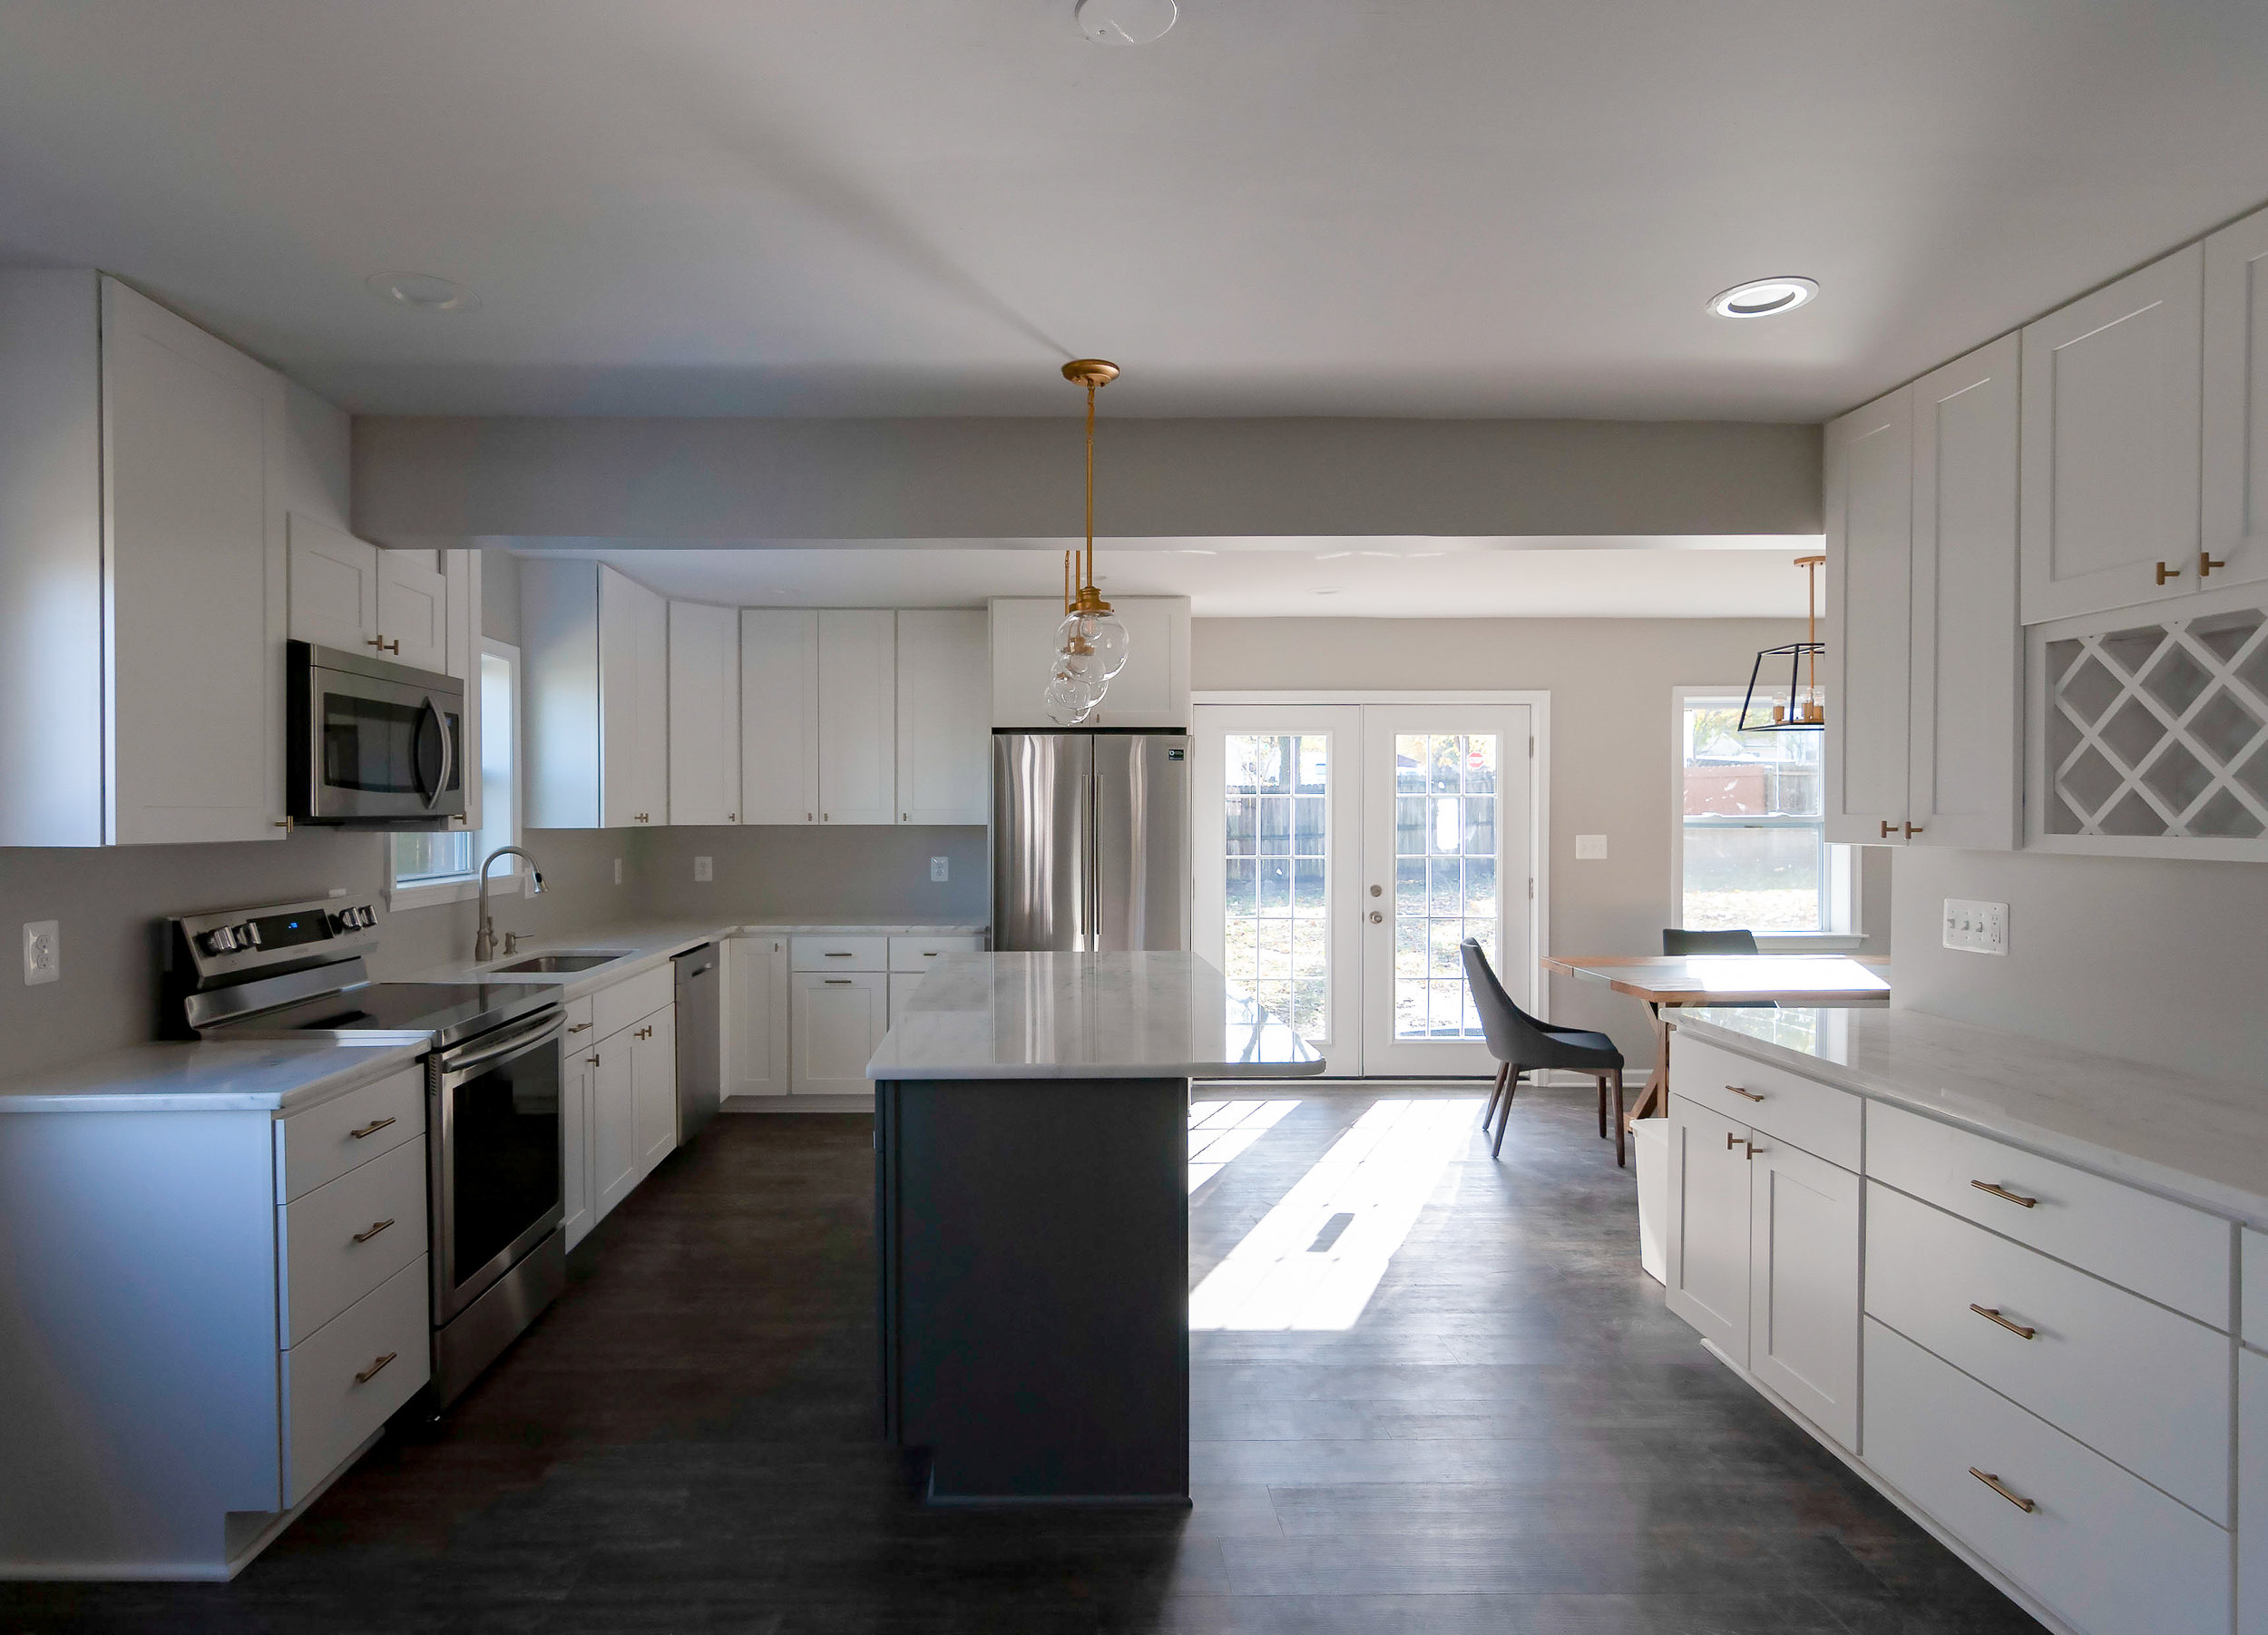 kitchen direct terry towels remodeling voted best remodeler in annapolis maryland 2913 main jpg